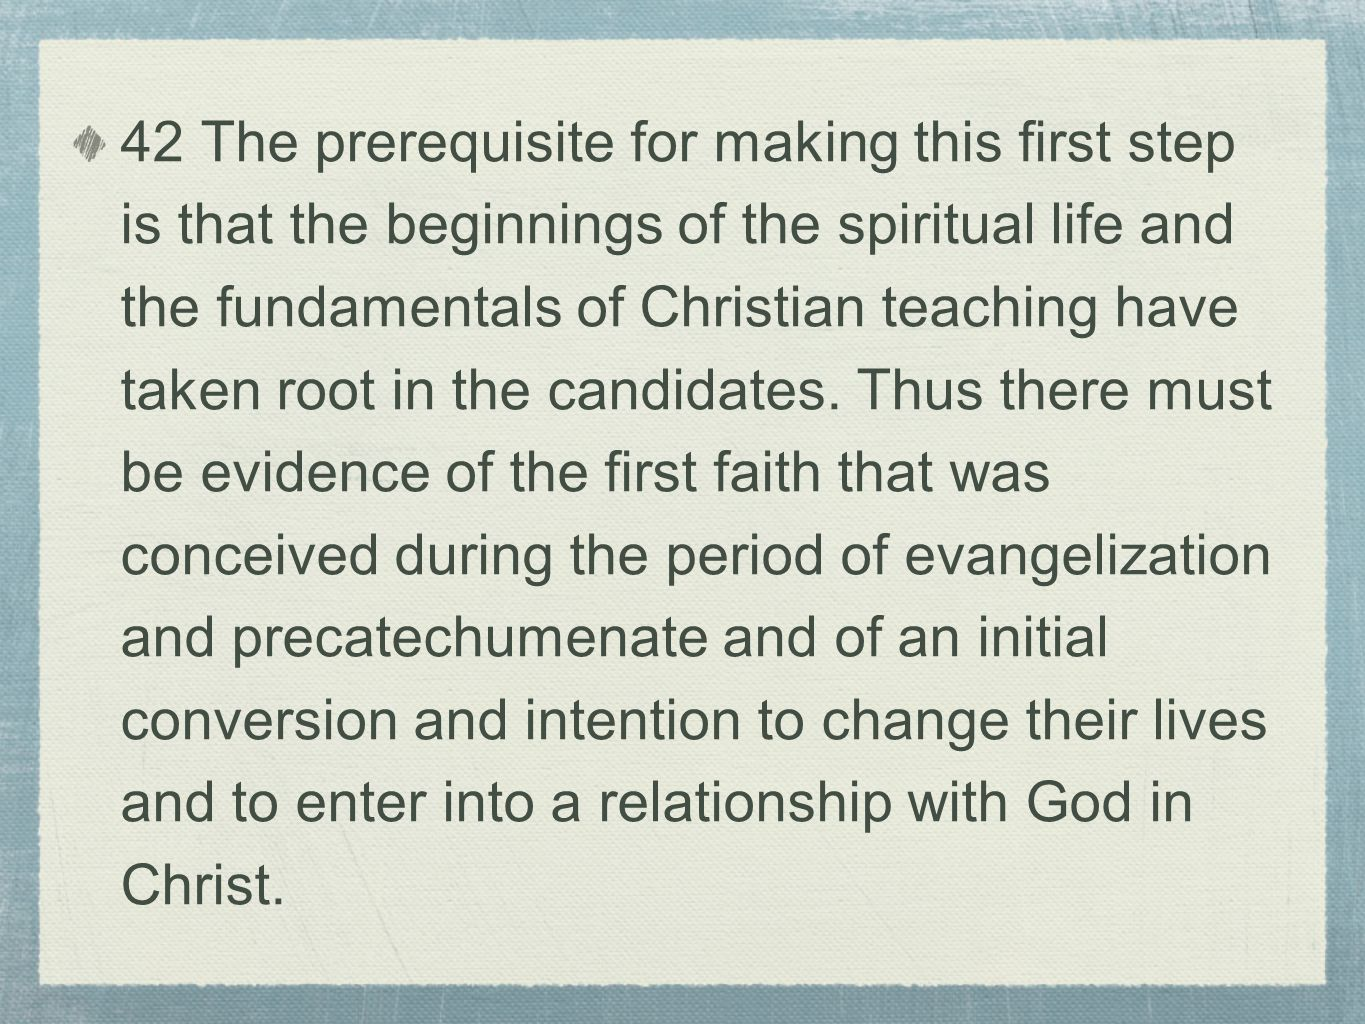 42 The prerequisite for making this first step is that the beginnings of the spiritual life and the fundamentals of Christian teaching have taken root in the candidates.